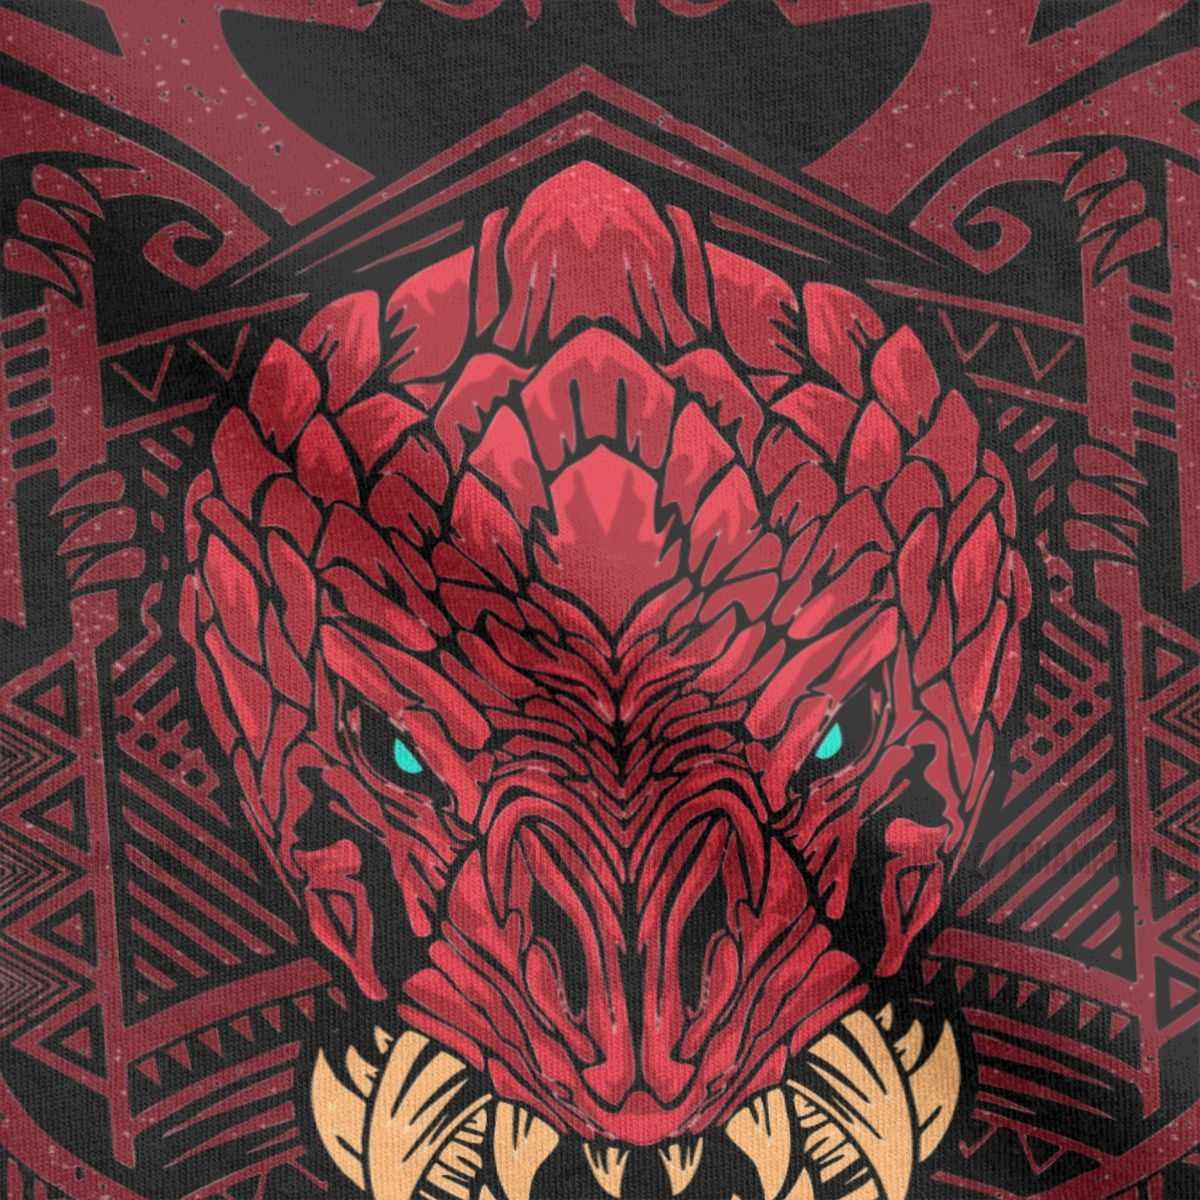 Men Odogaron Mhw Monster Hunter World T Shirts Gaming Rathian